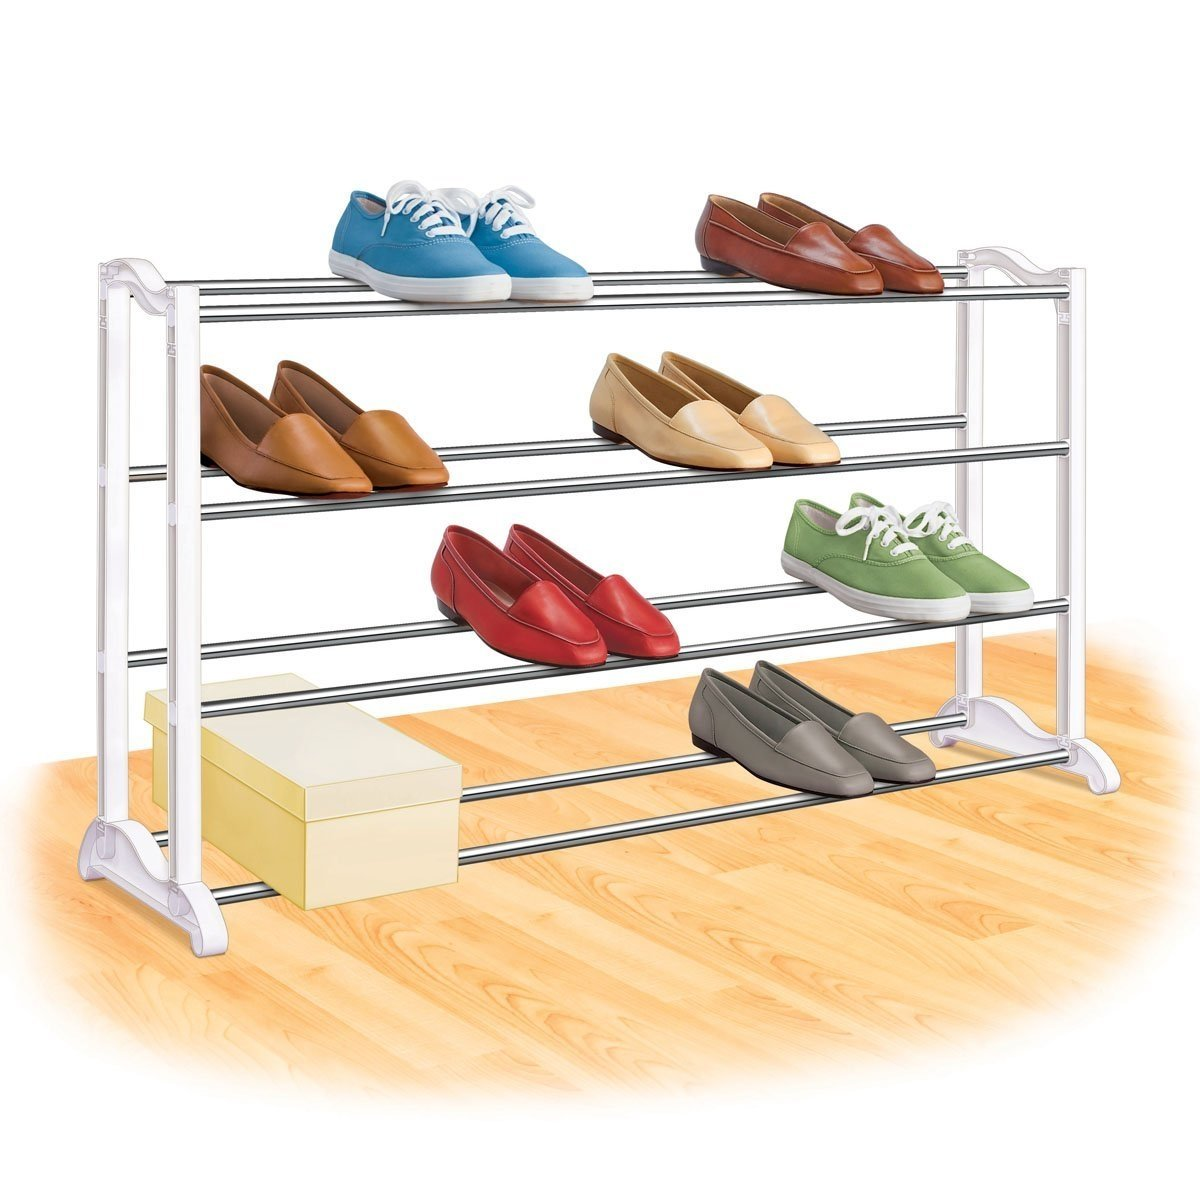 4-Tier Shoe Rack - Holds up to 20 Pair of Shoes